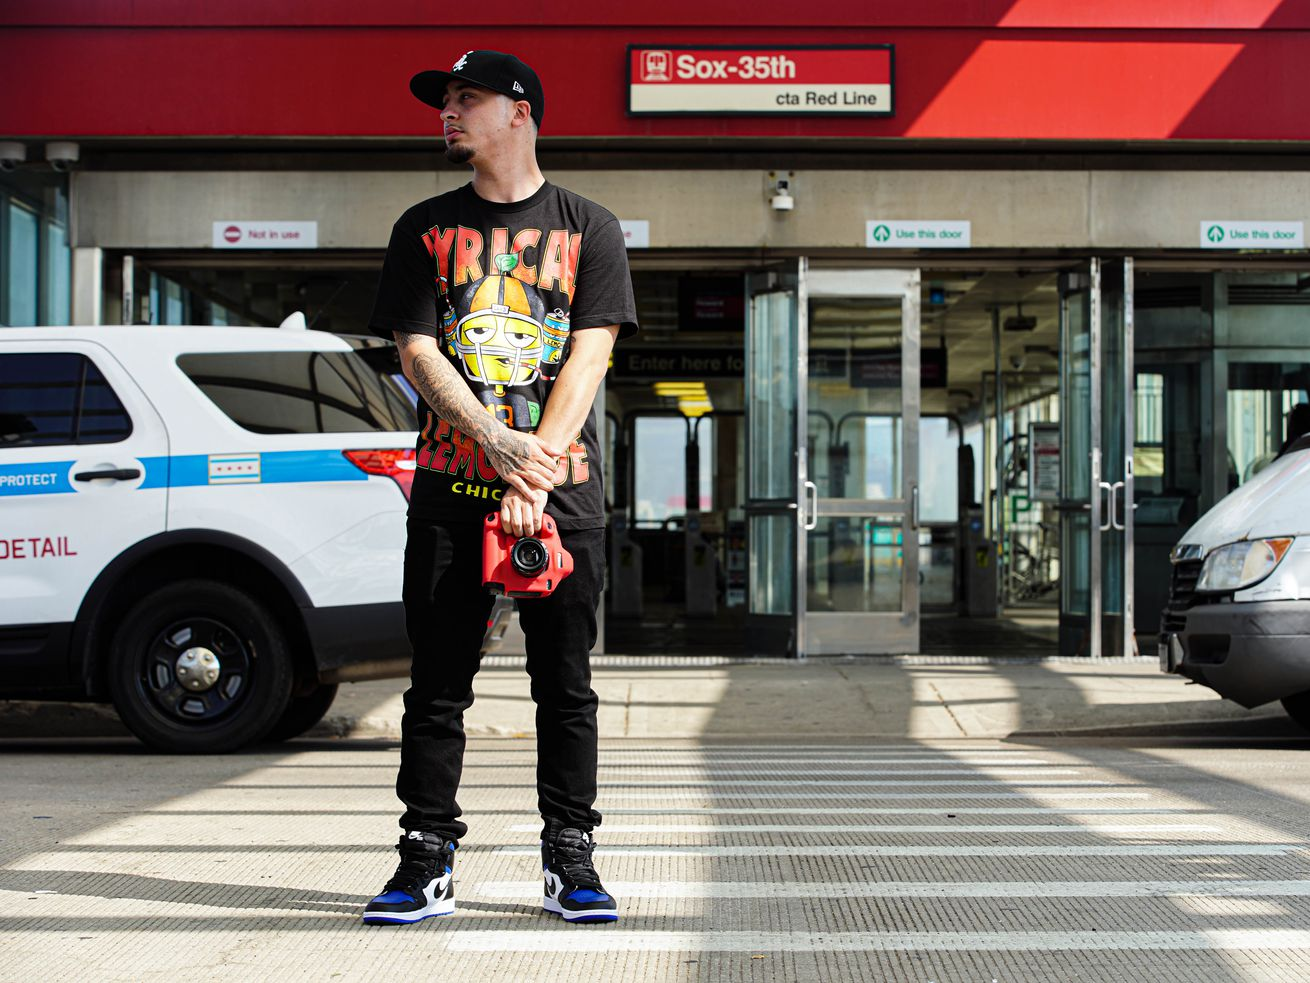 How Chicago man went from overnight shifts to Tim Anderson's personal photographer